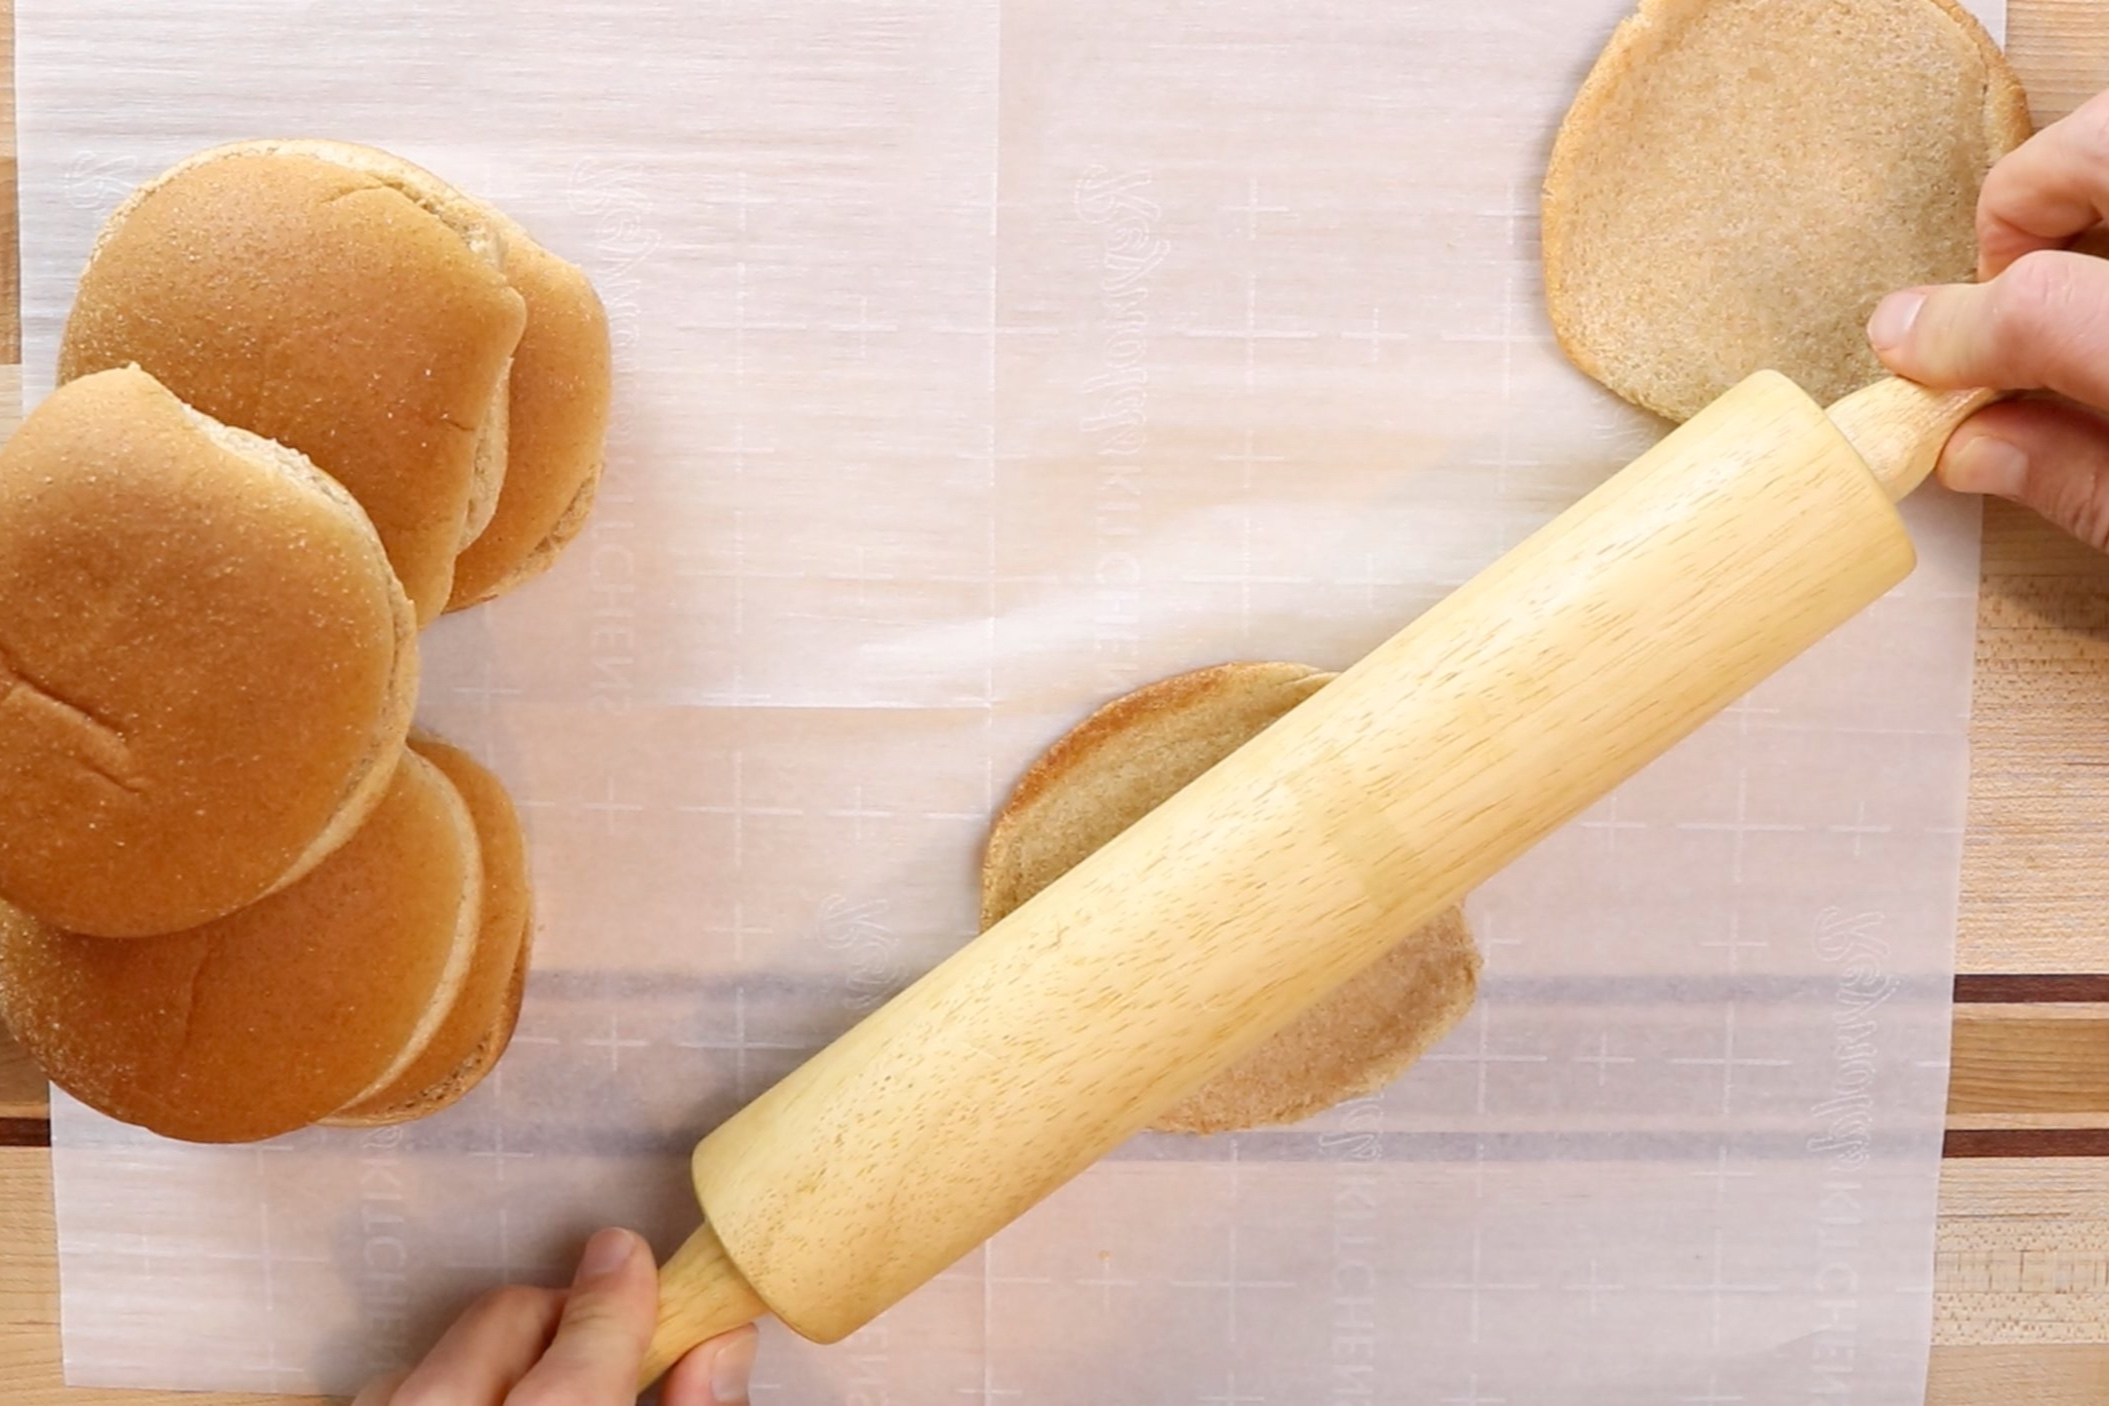 5. Using a rolling pin, flatten each burger bun half. -